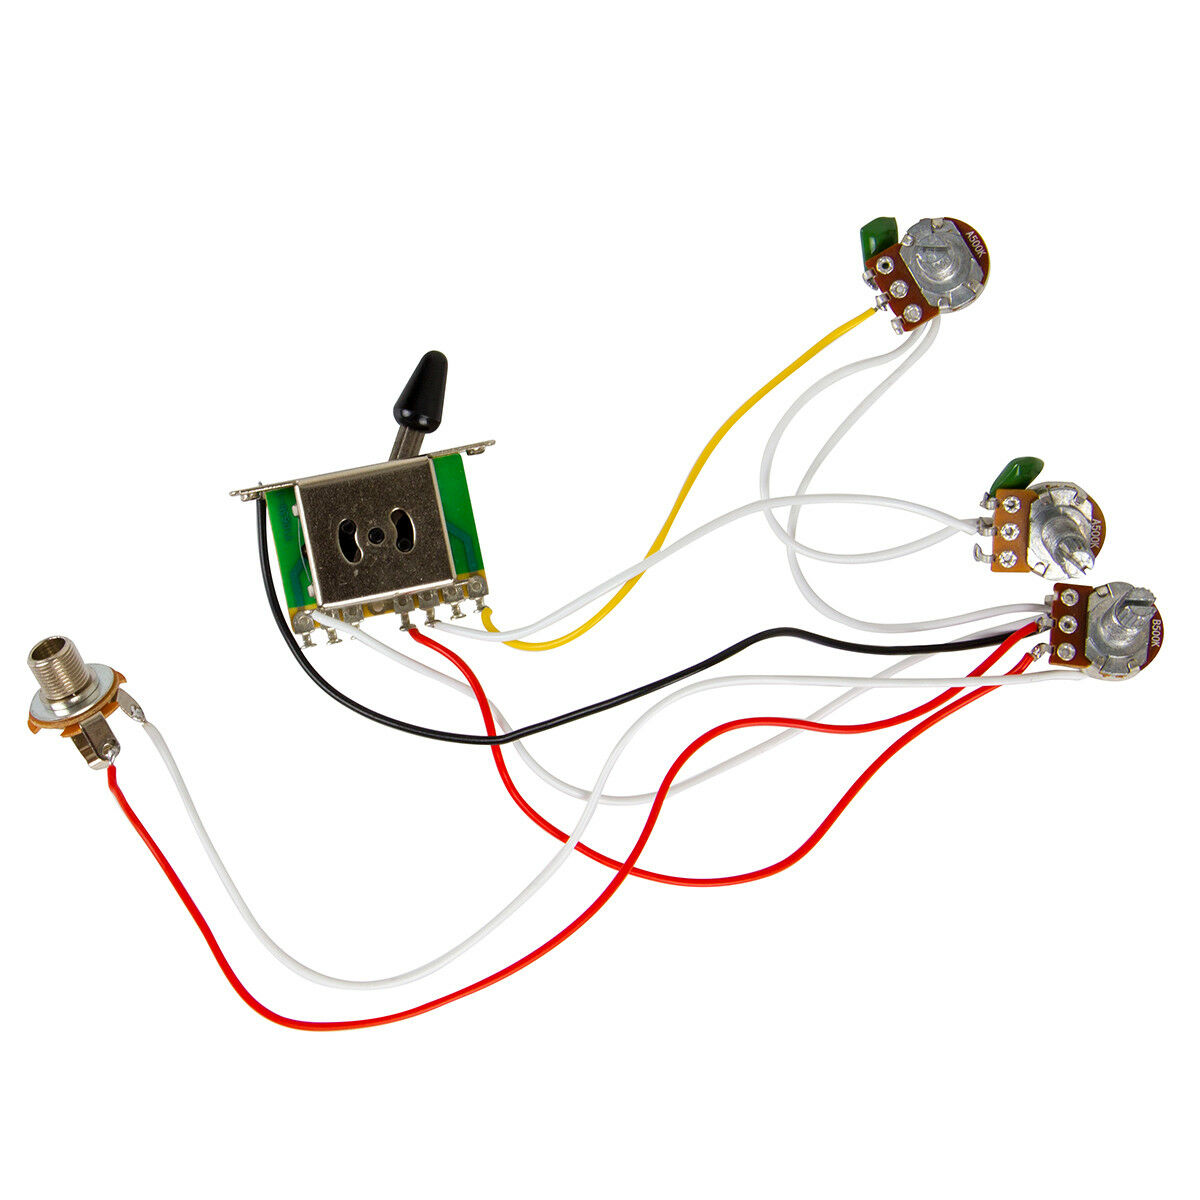 hight resolution of guitar wiring harness kit 5 way switch 500k pots for fender stratocaster strat